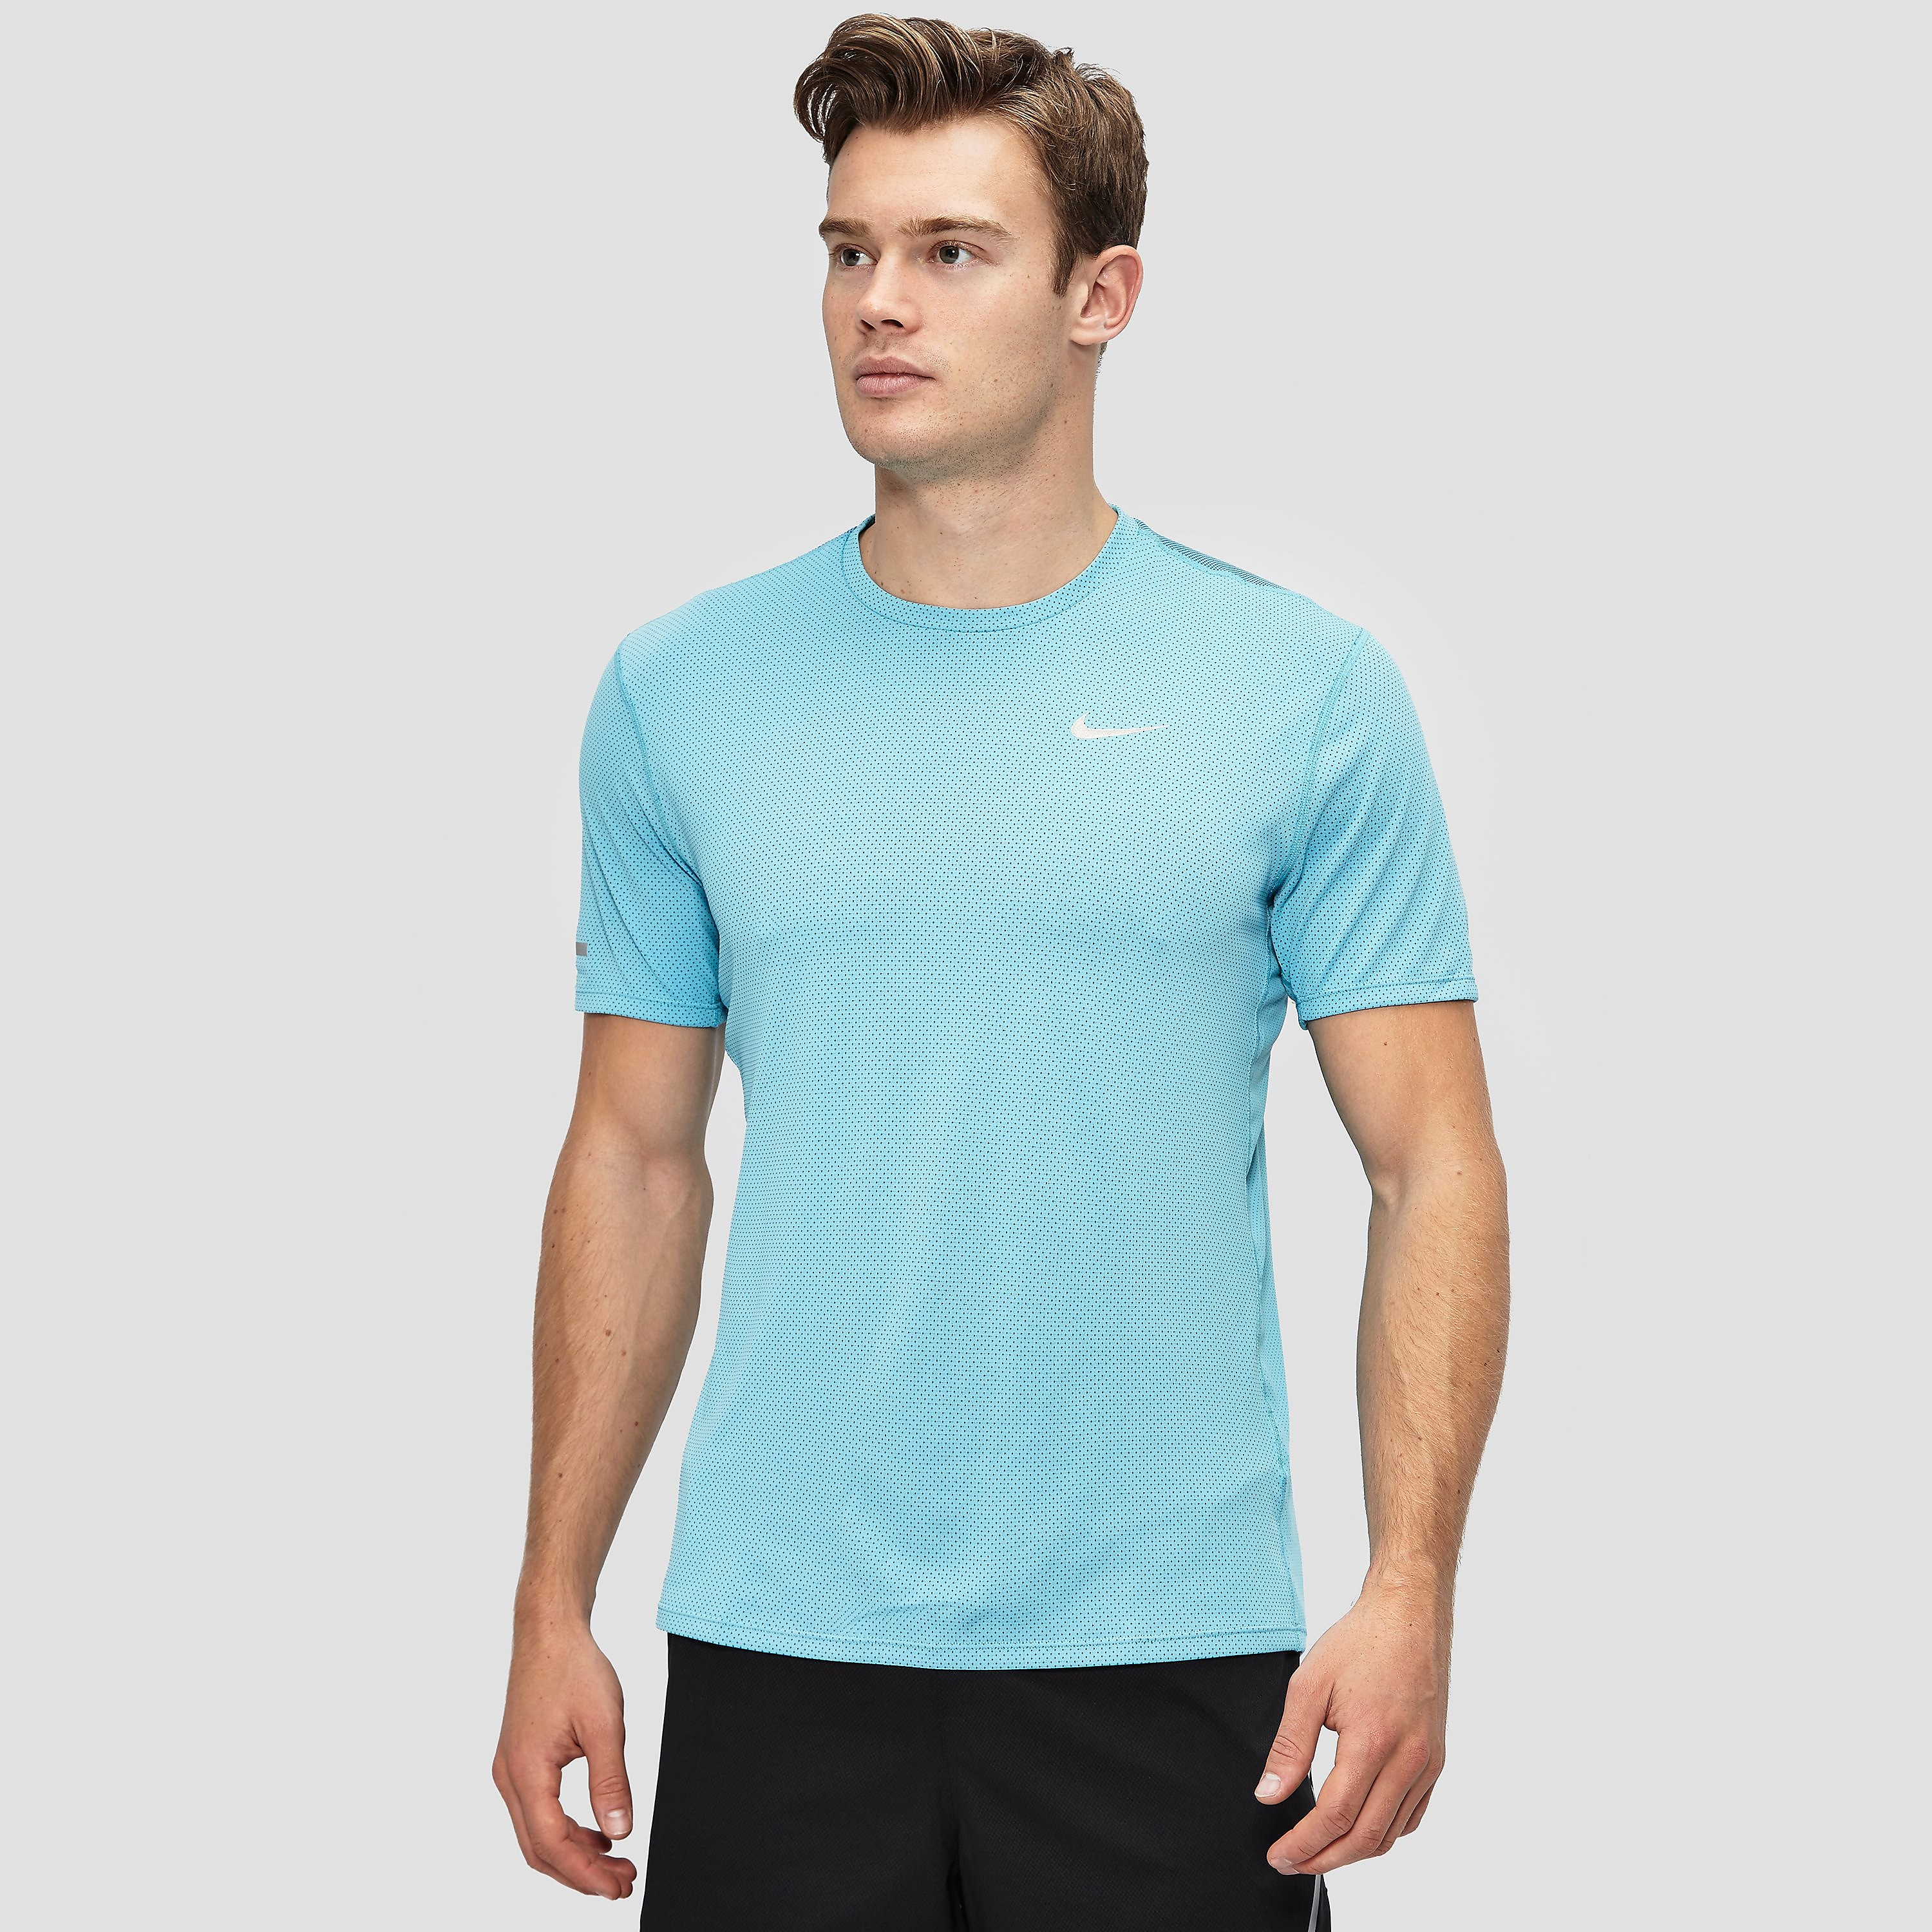 Nike Dri-FIT Contour Men's Running Short-Sleeve Shirt